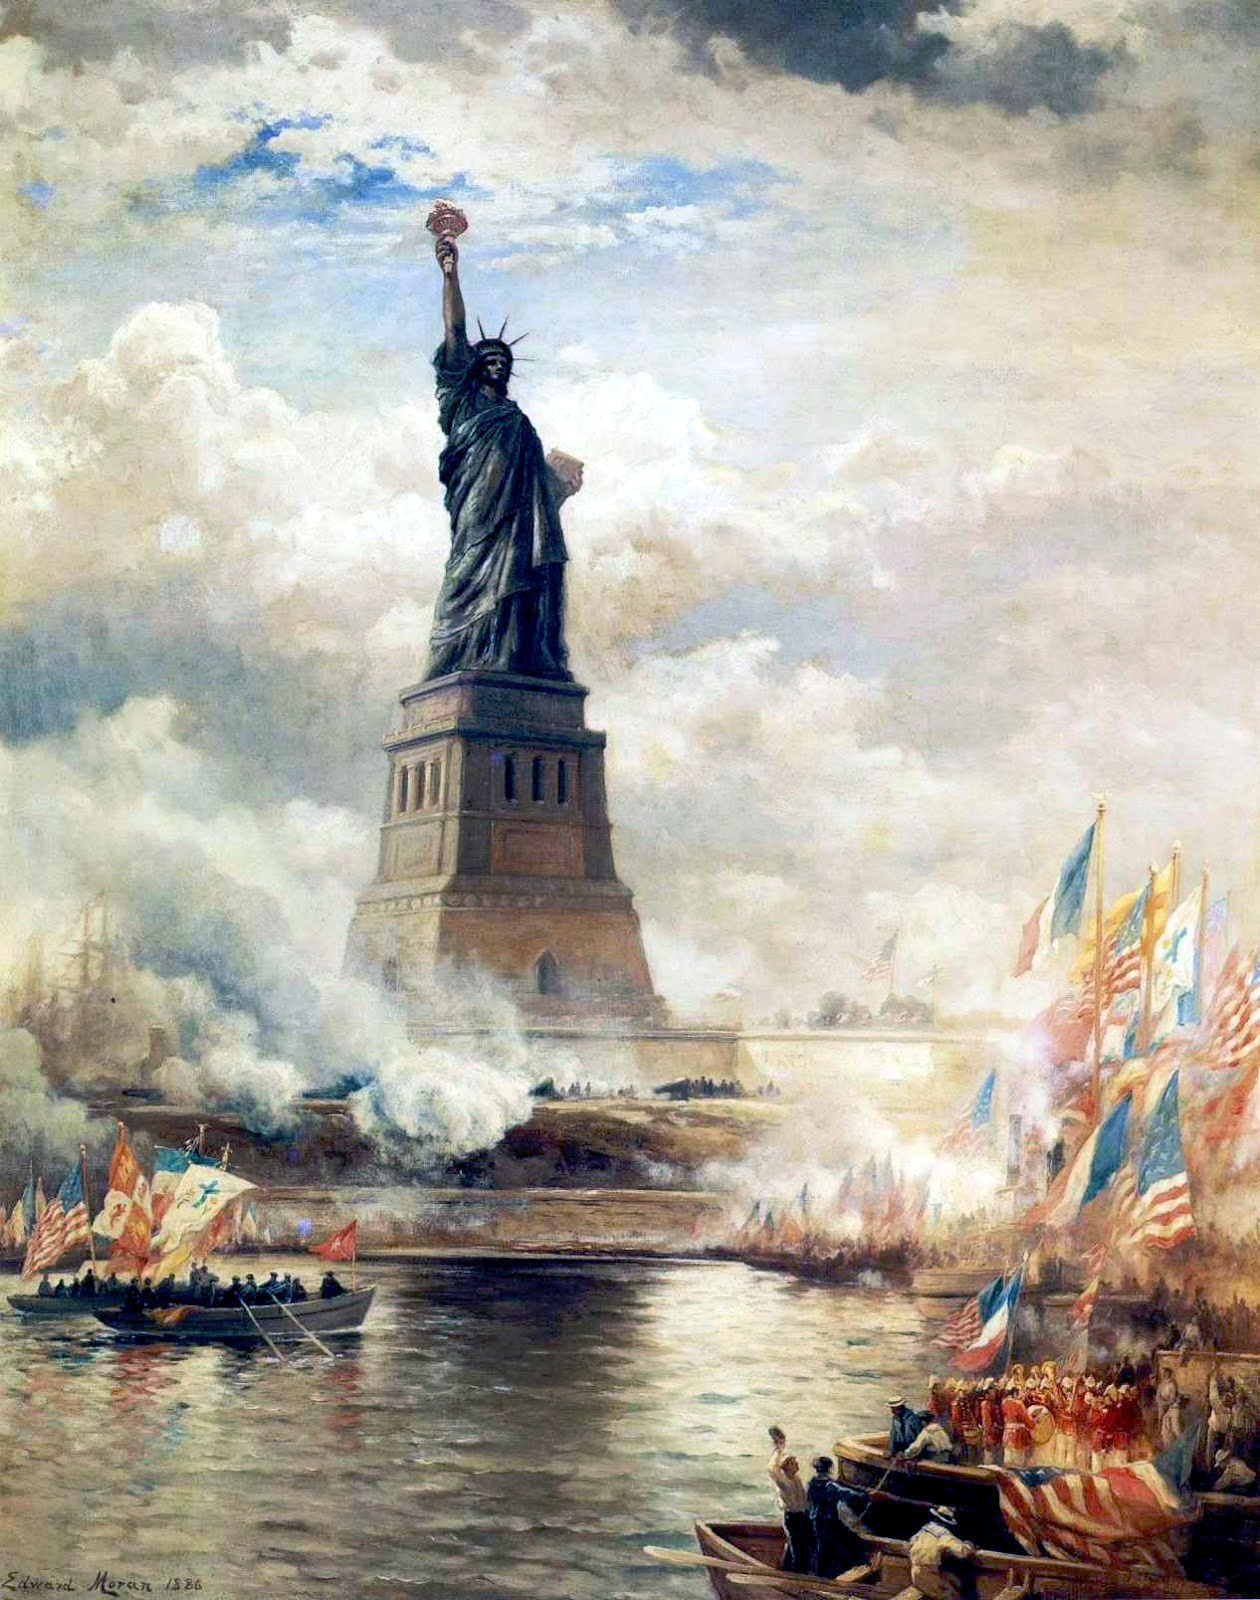 Edward Moran's Unveiling of the Statue of Liberty Enlightening the World, completed 1886.